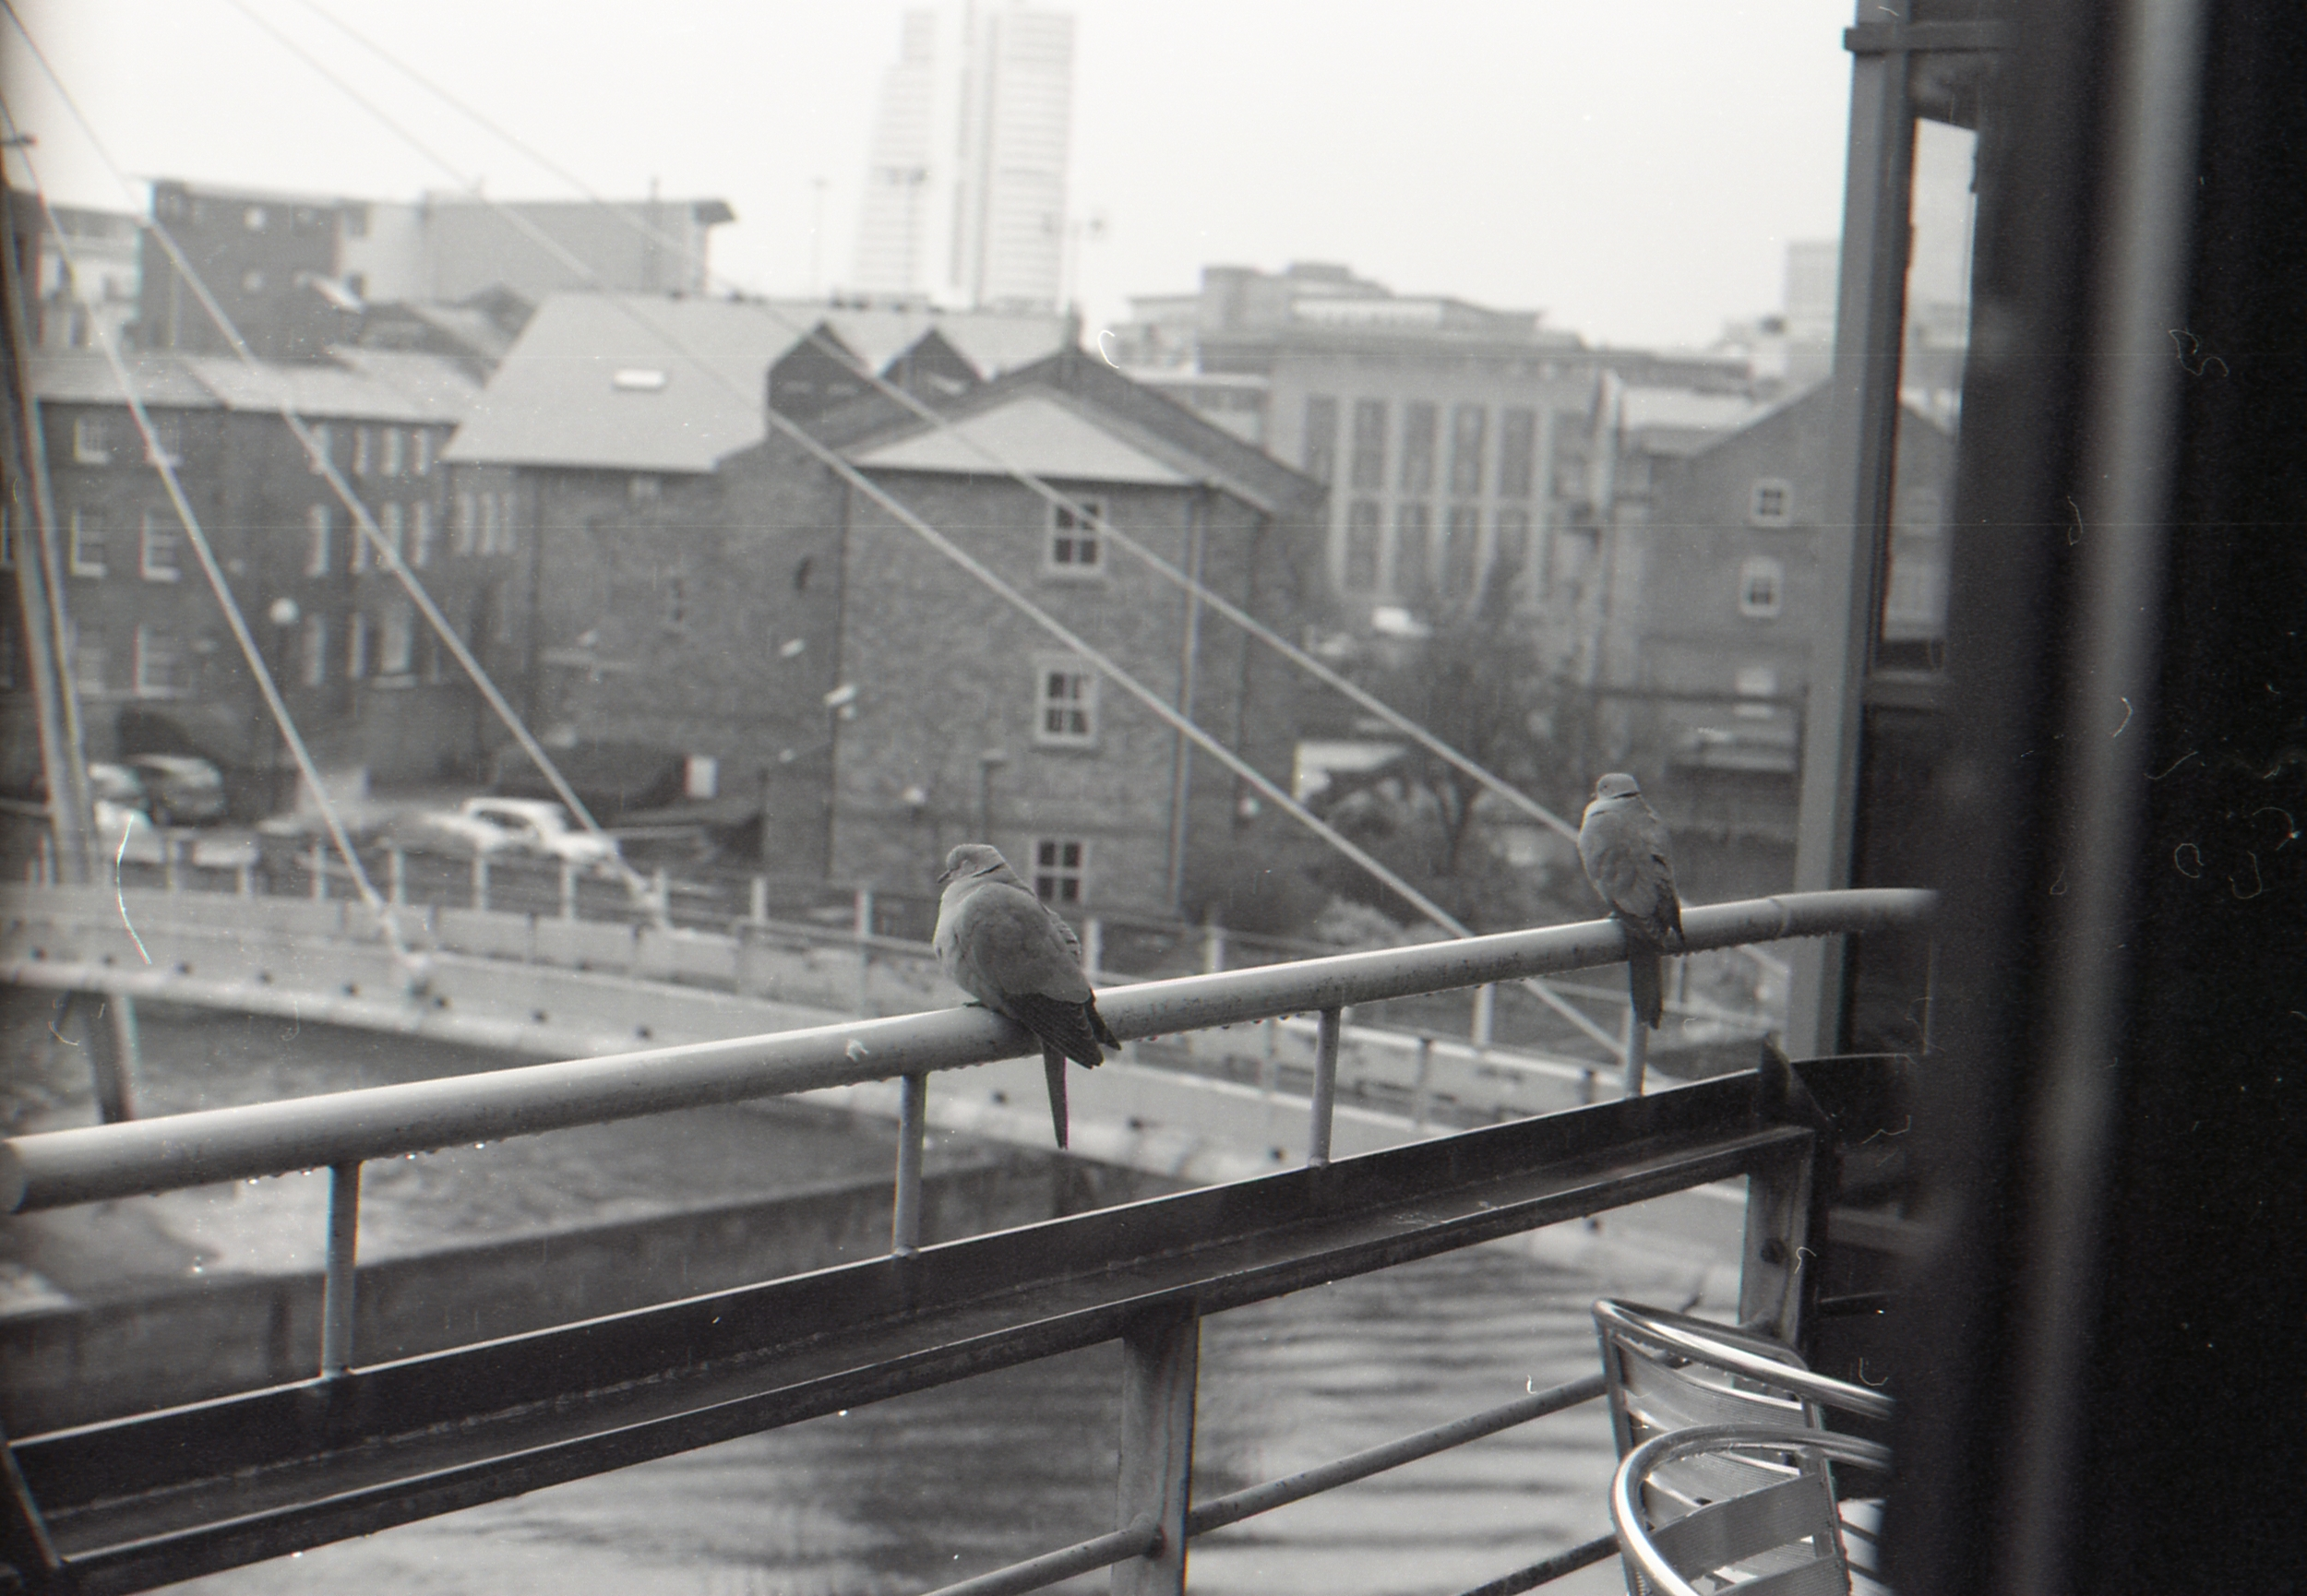 Day 103 - I sit right near the balcony at work (which is so awesome I must say and very good for my sunshine intake/serotonin levels) and I've never seen a collared dove on the rail let alone two! If you look closely you can just about see the rain and how wet it was that day too!